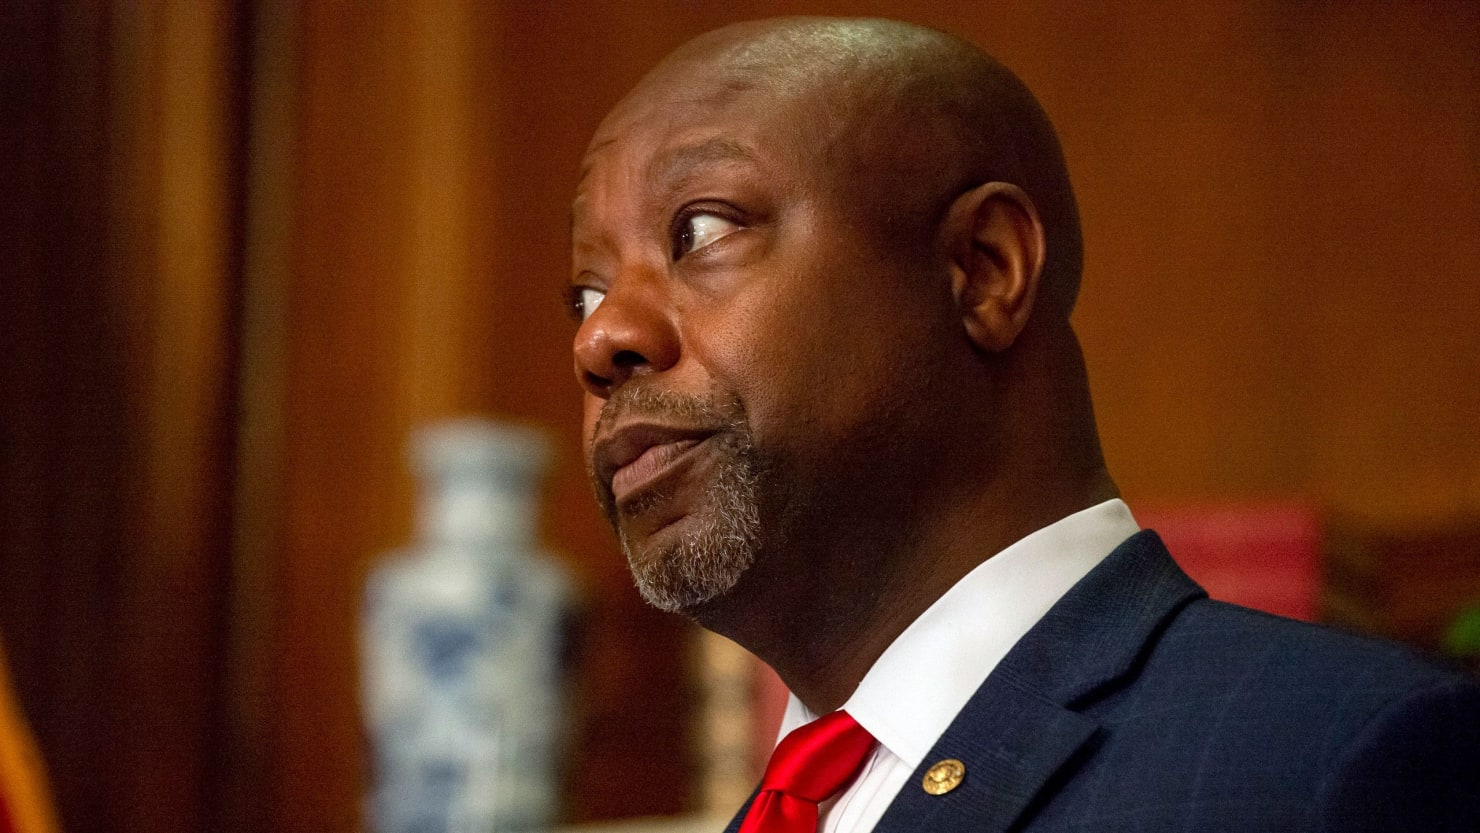 Tim Scott Calls on Trump to 'Correct' White Supremacist Debate Comments